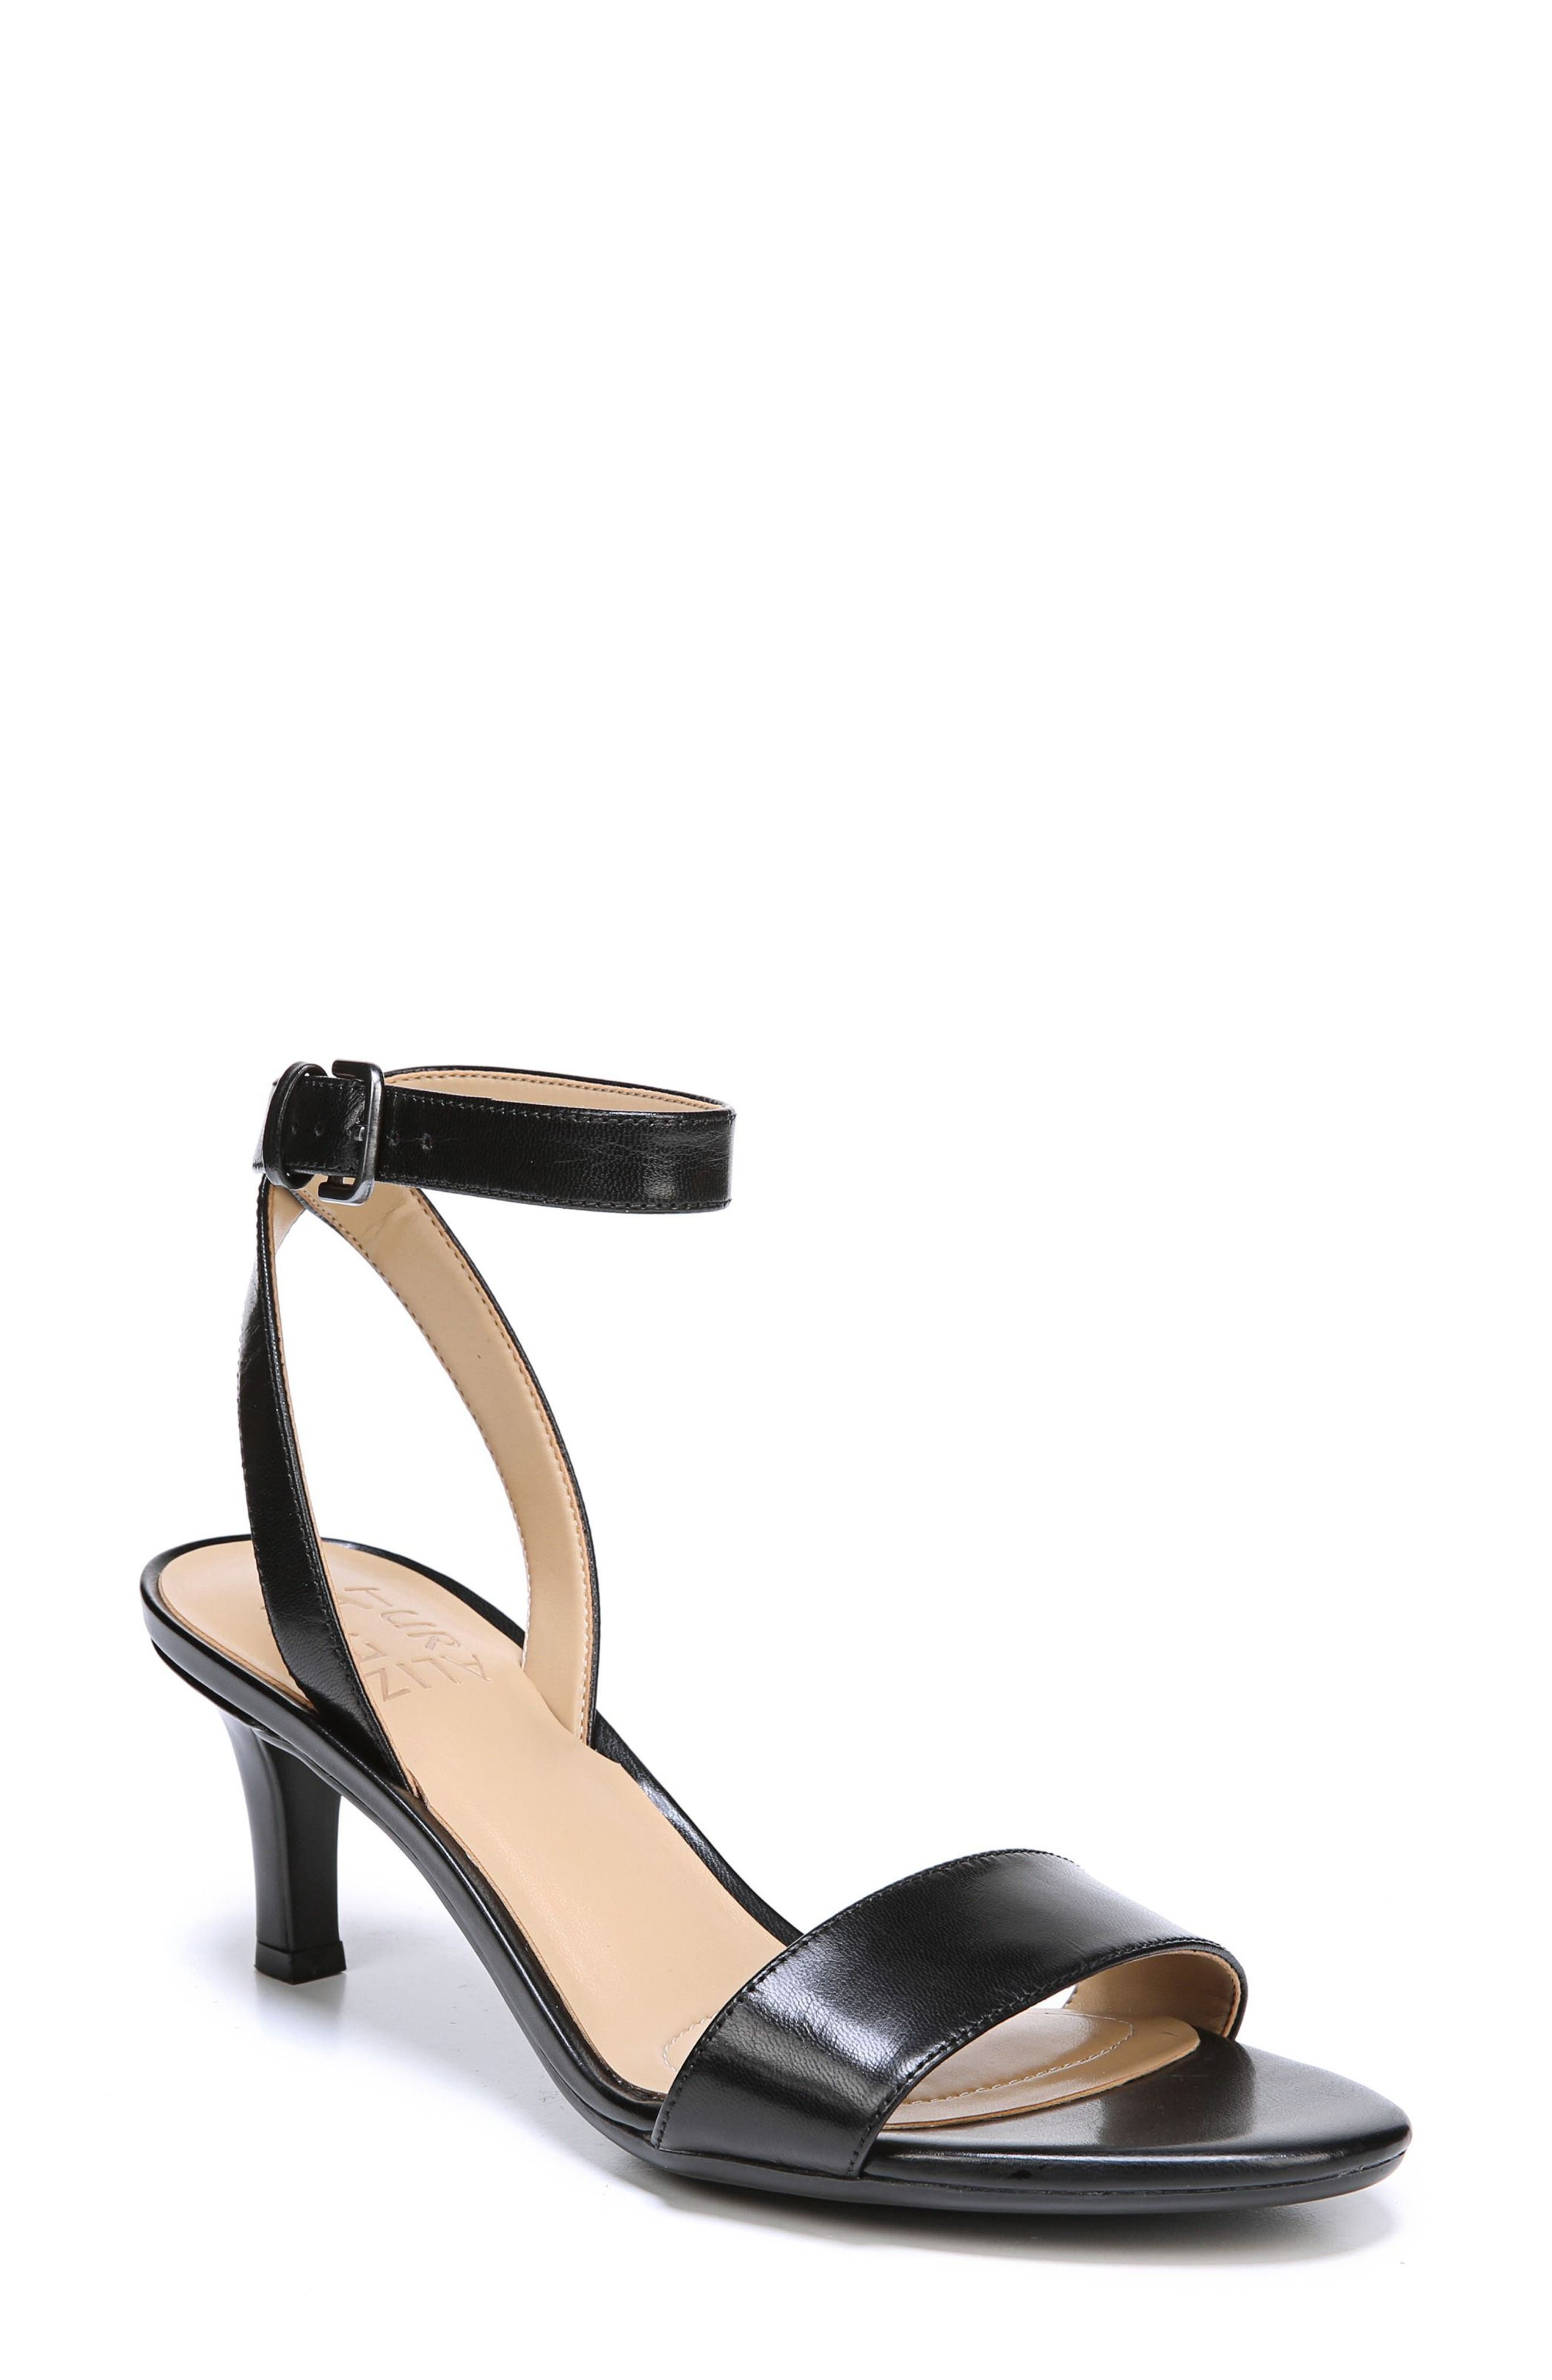 Tinda Sandal,                         Main,                         color, BLACK LEATHER